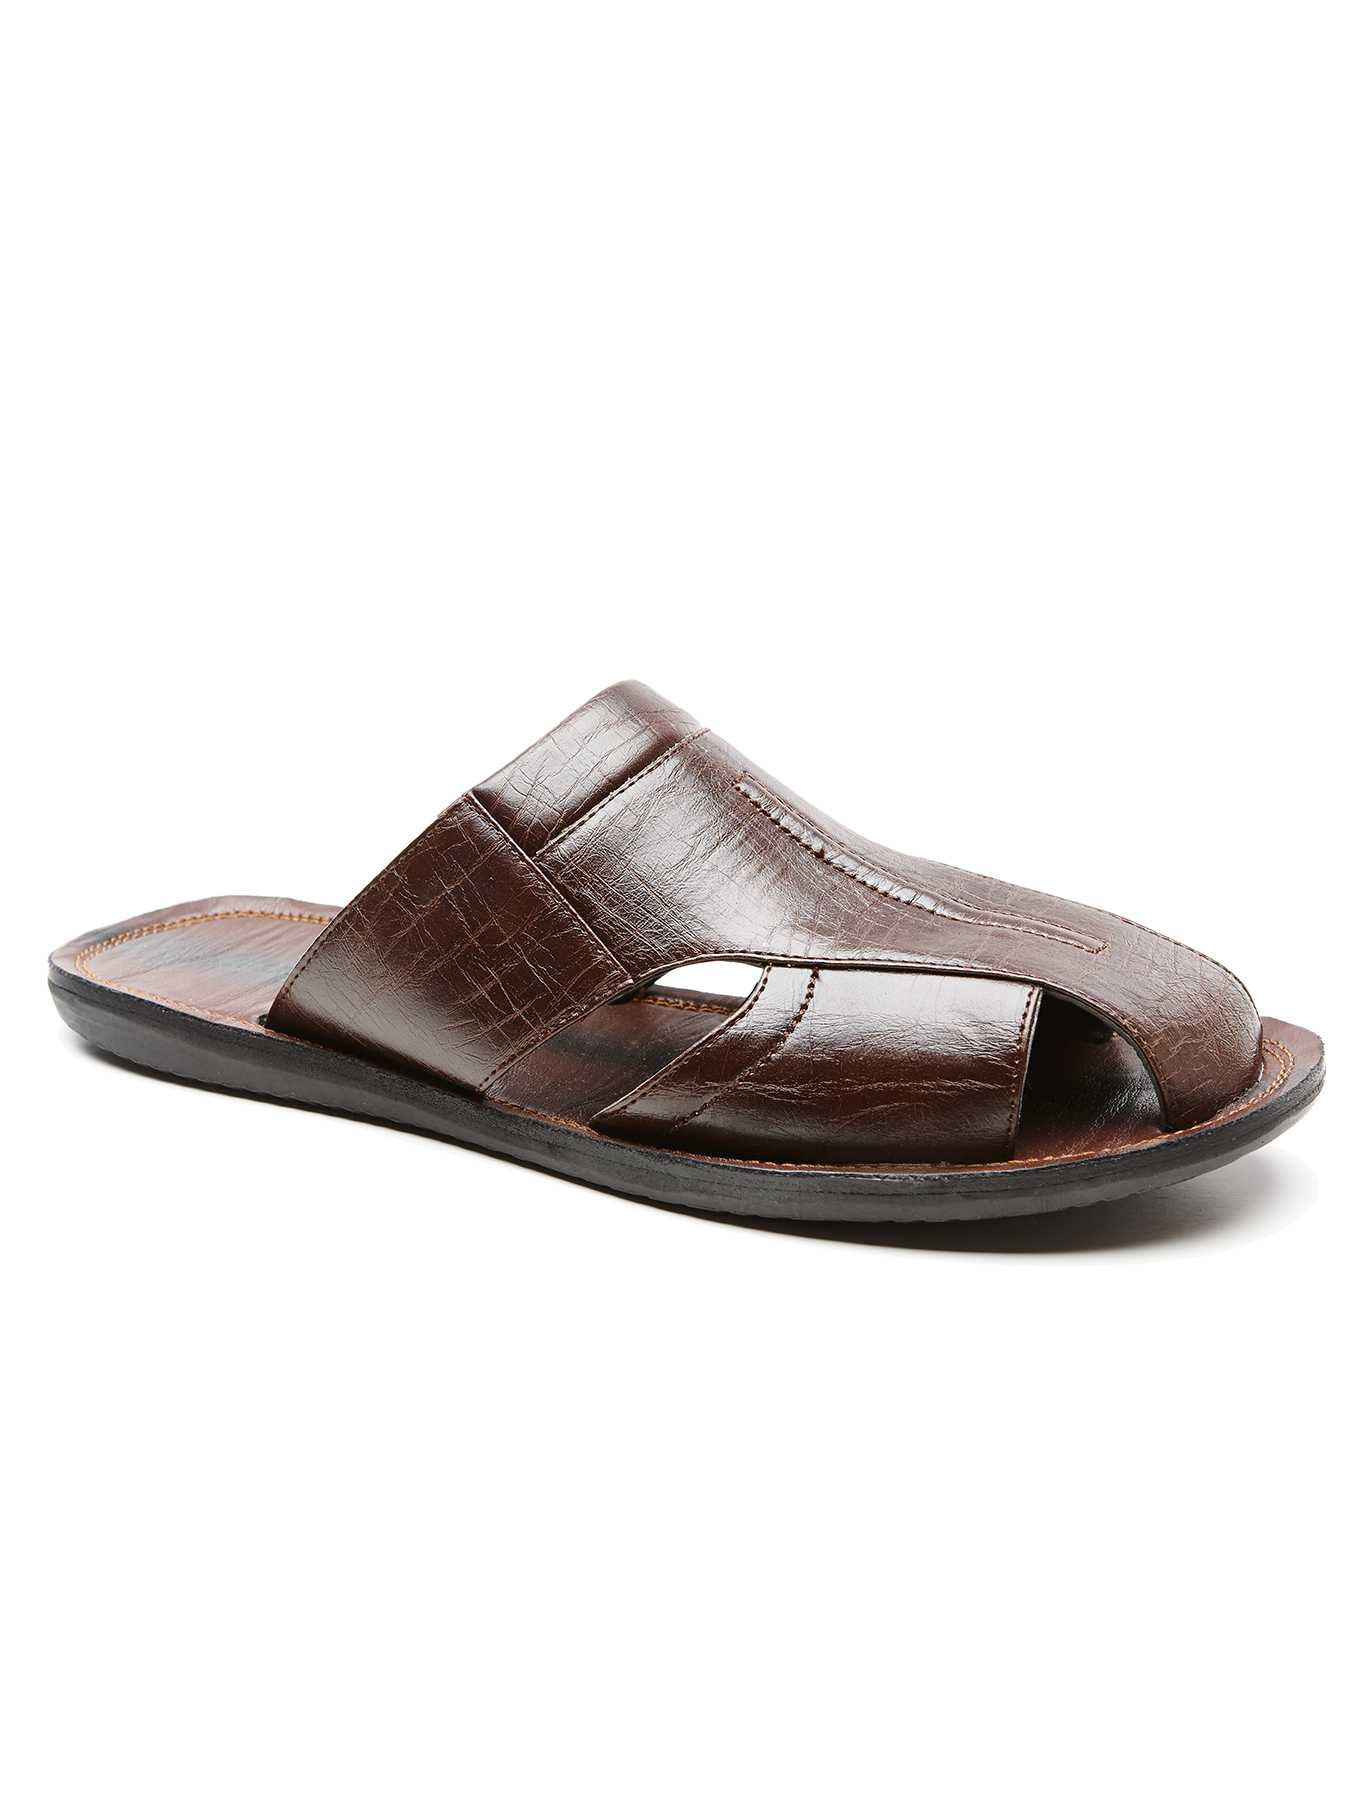 Cubavera Closed Toe Slide Sandal